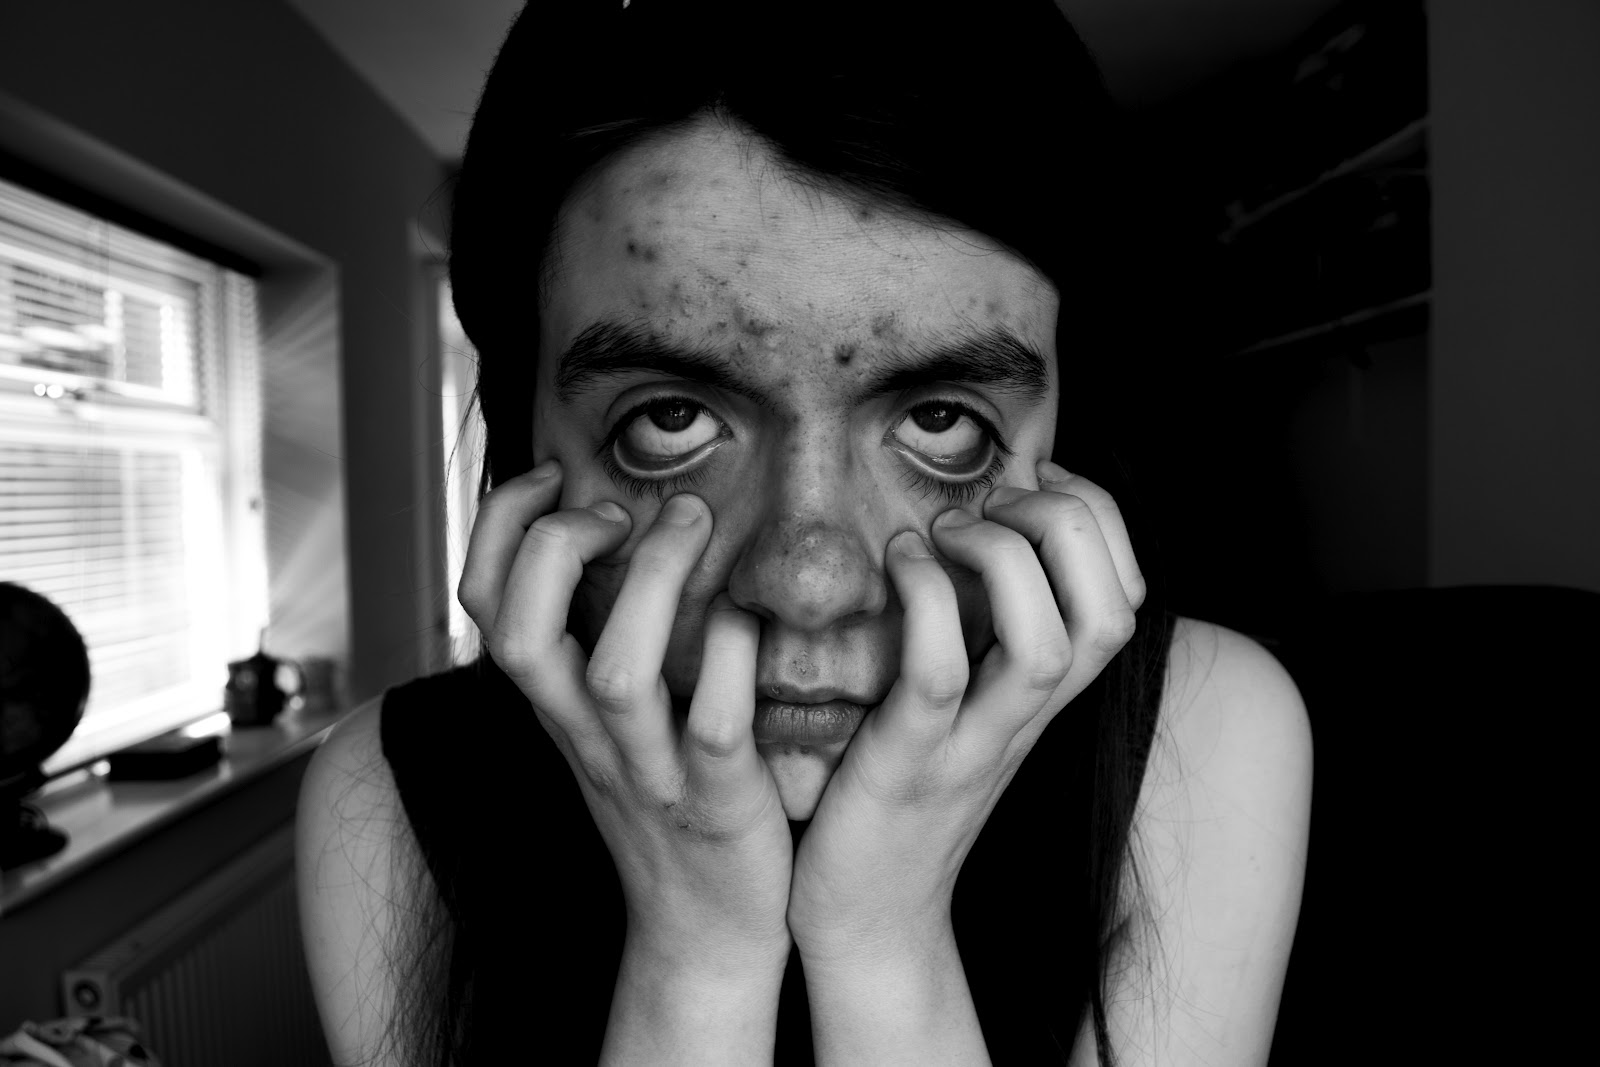 I Took This Image For My Self Portrait Assignment Because Idea Was Just To Take Portraits In Black And White With Different Emotions Feelings